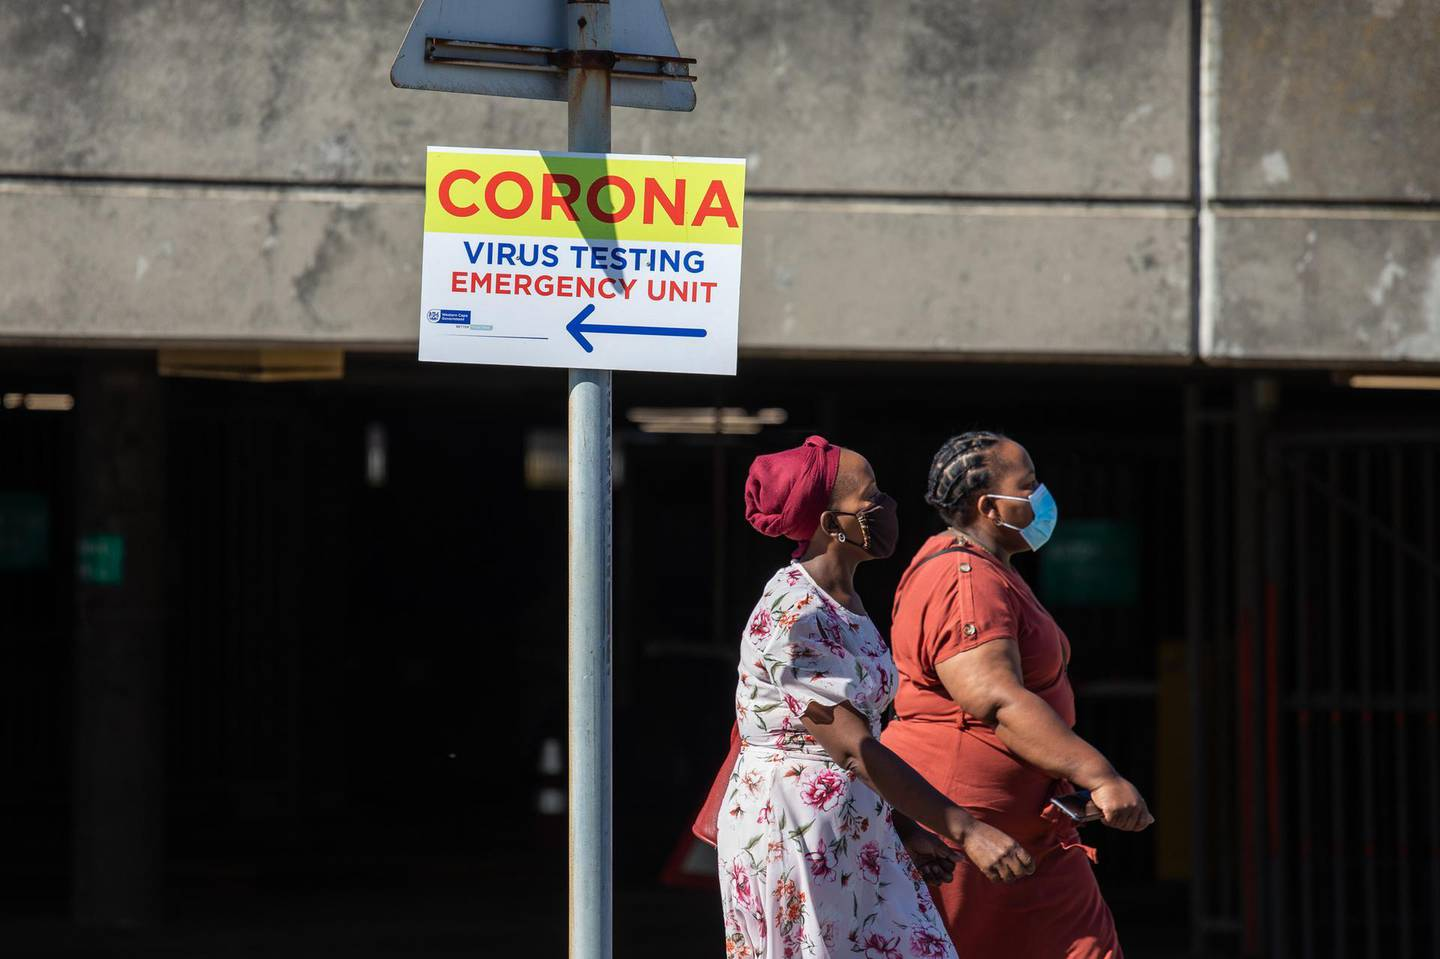 A coronavirus testing unit sign outside Groote Schuur hospital in Cape Town, South Africa, on Monday, Jan. 11, 2021. The pandemic and restrictions imposed to contain it have devastated Africa's most industrialized economy, and the extension of curbs that came into effect at the height of the holiday season bode ill for efforts to engineer arebound. Photographer: Dwayne Senior/Bloomberg